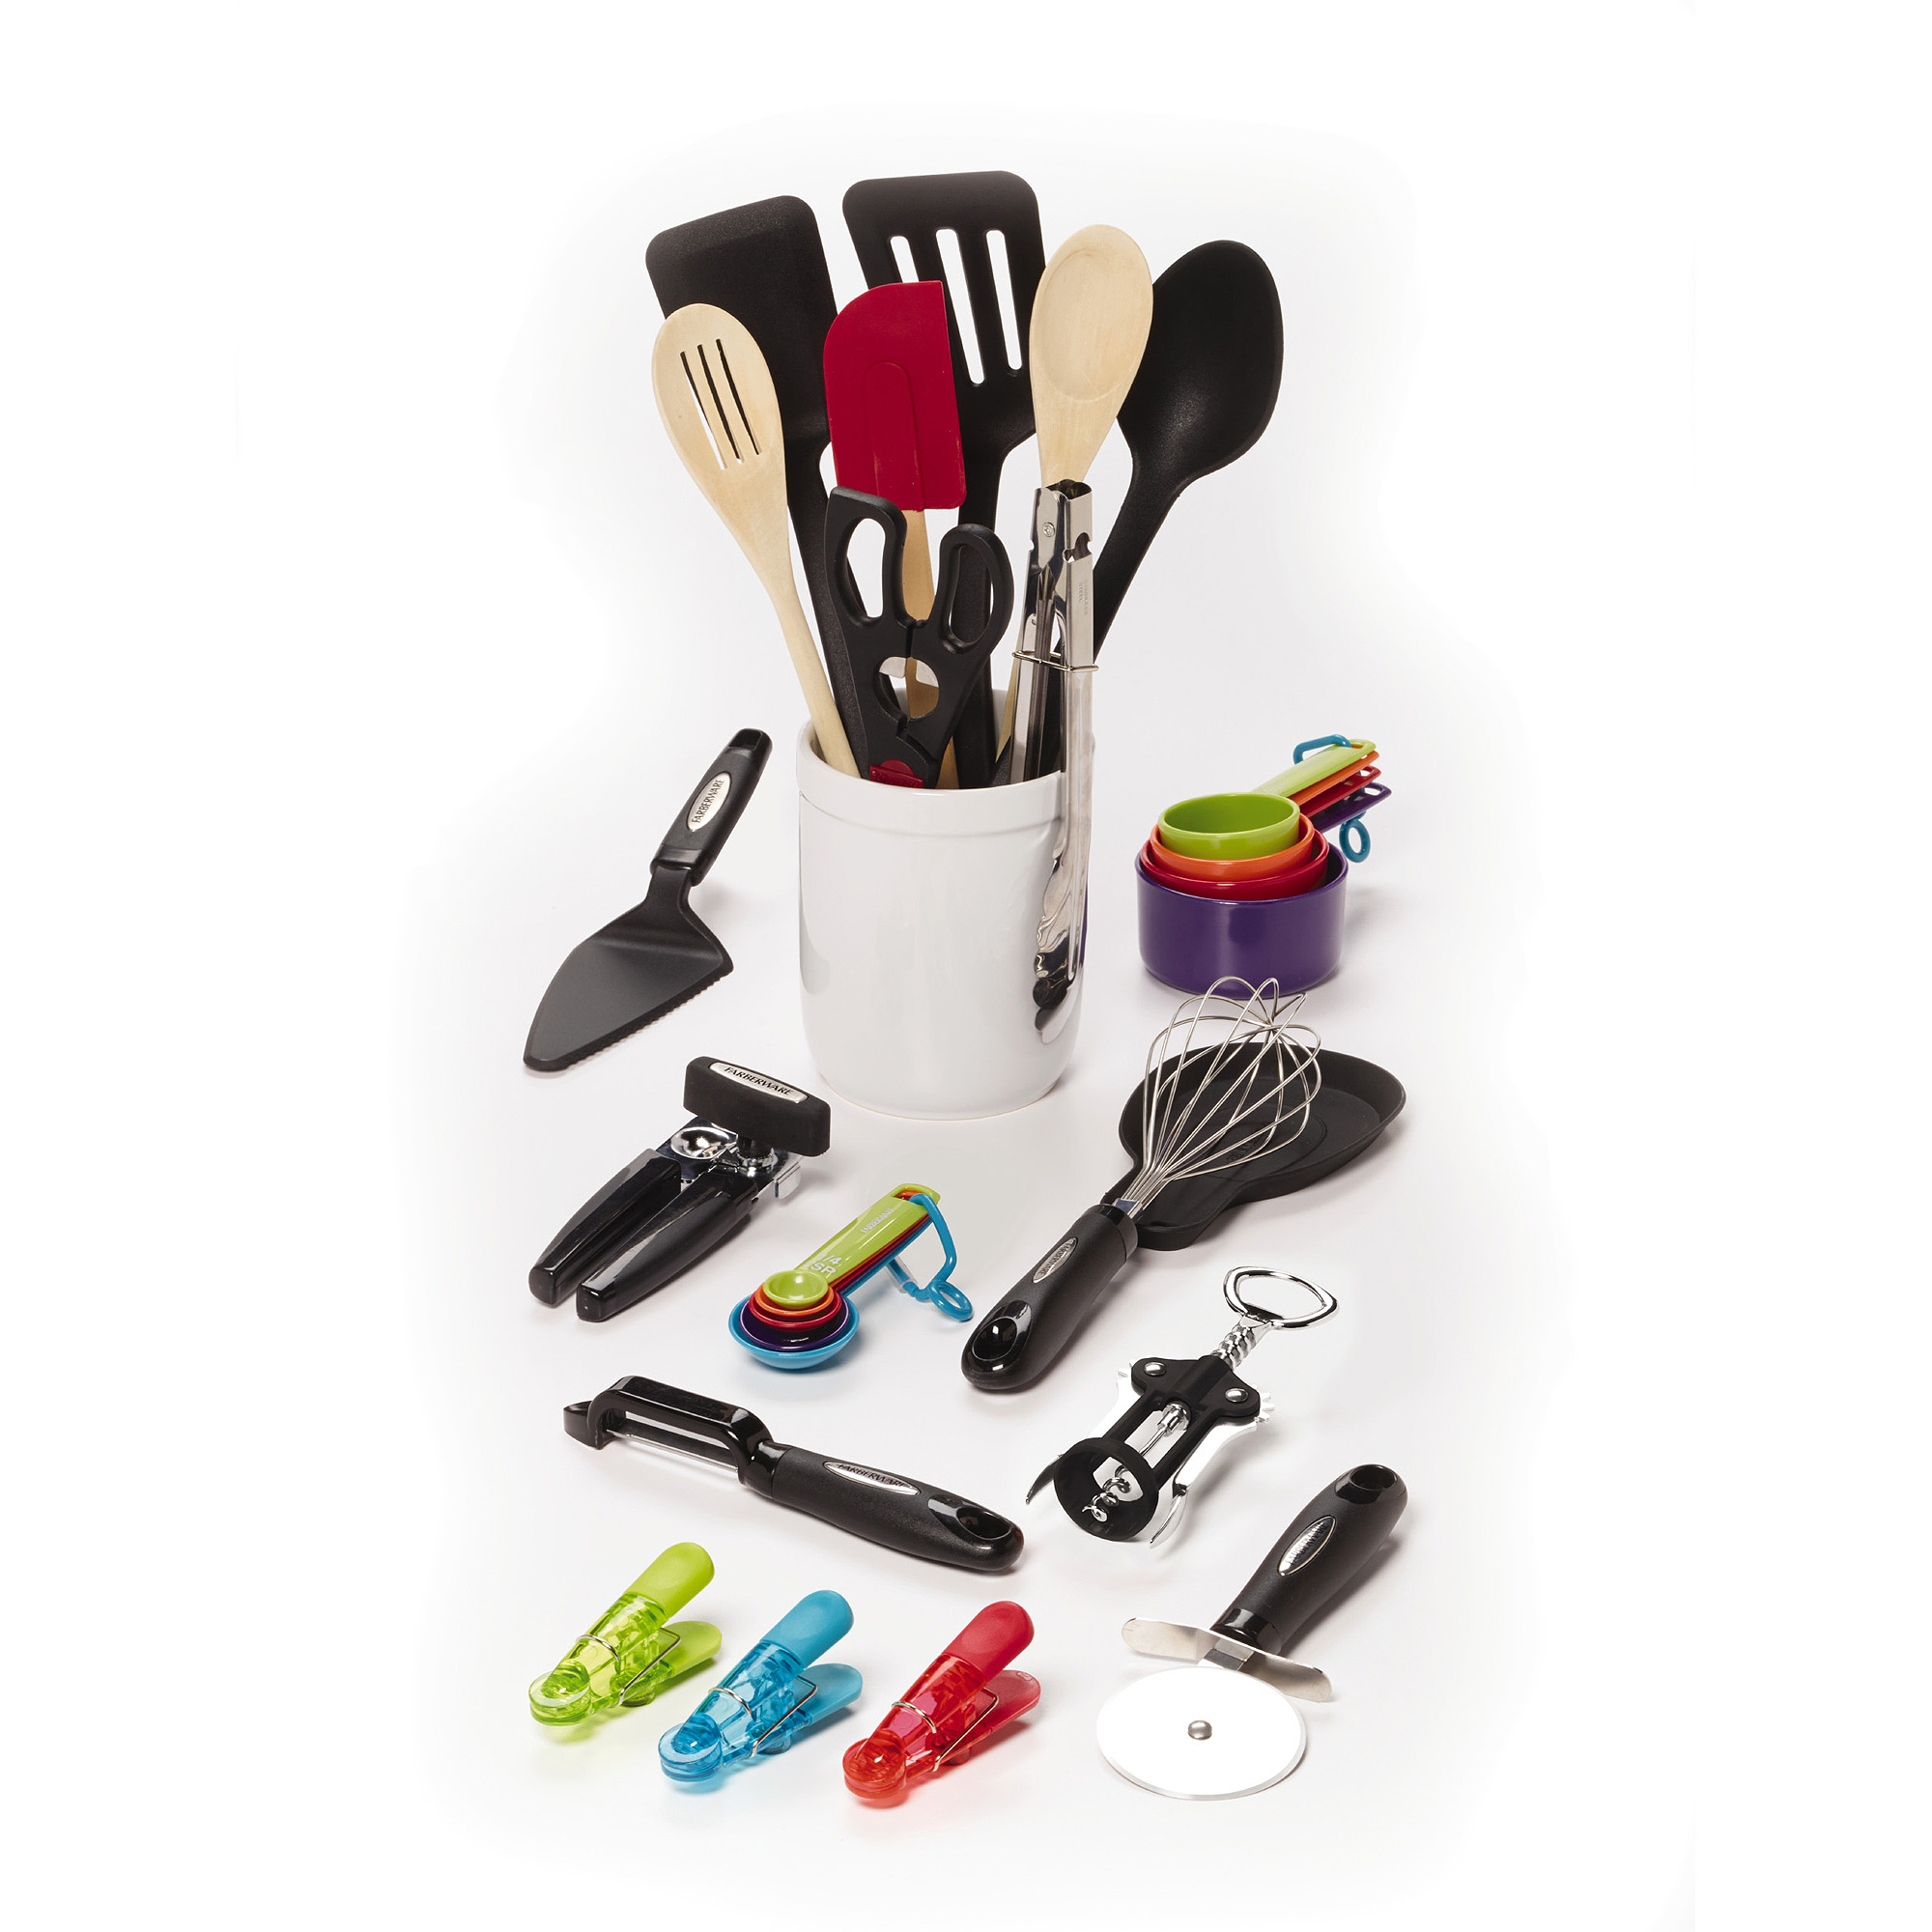 Farberware Kitchen Utensil & Gadget Set, 28 Piece